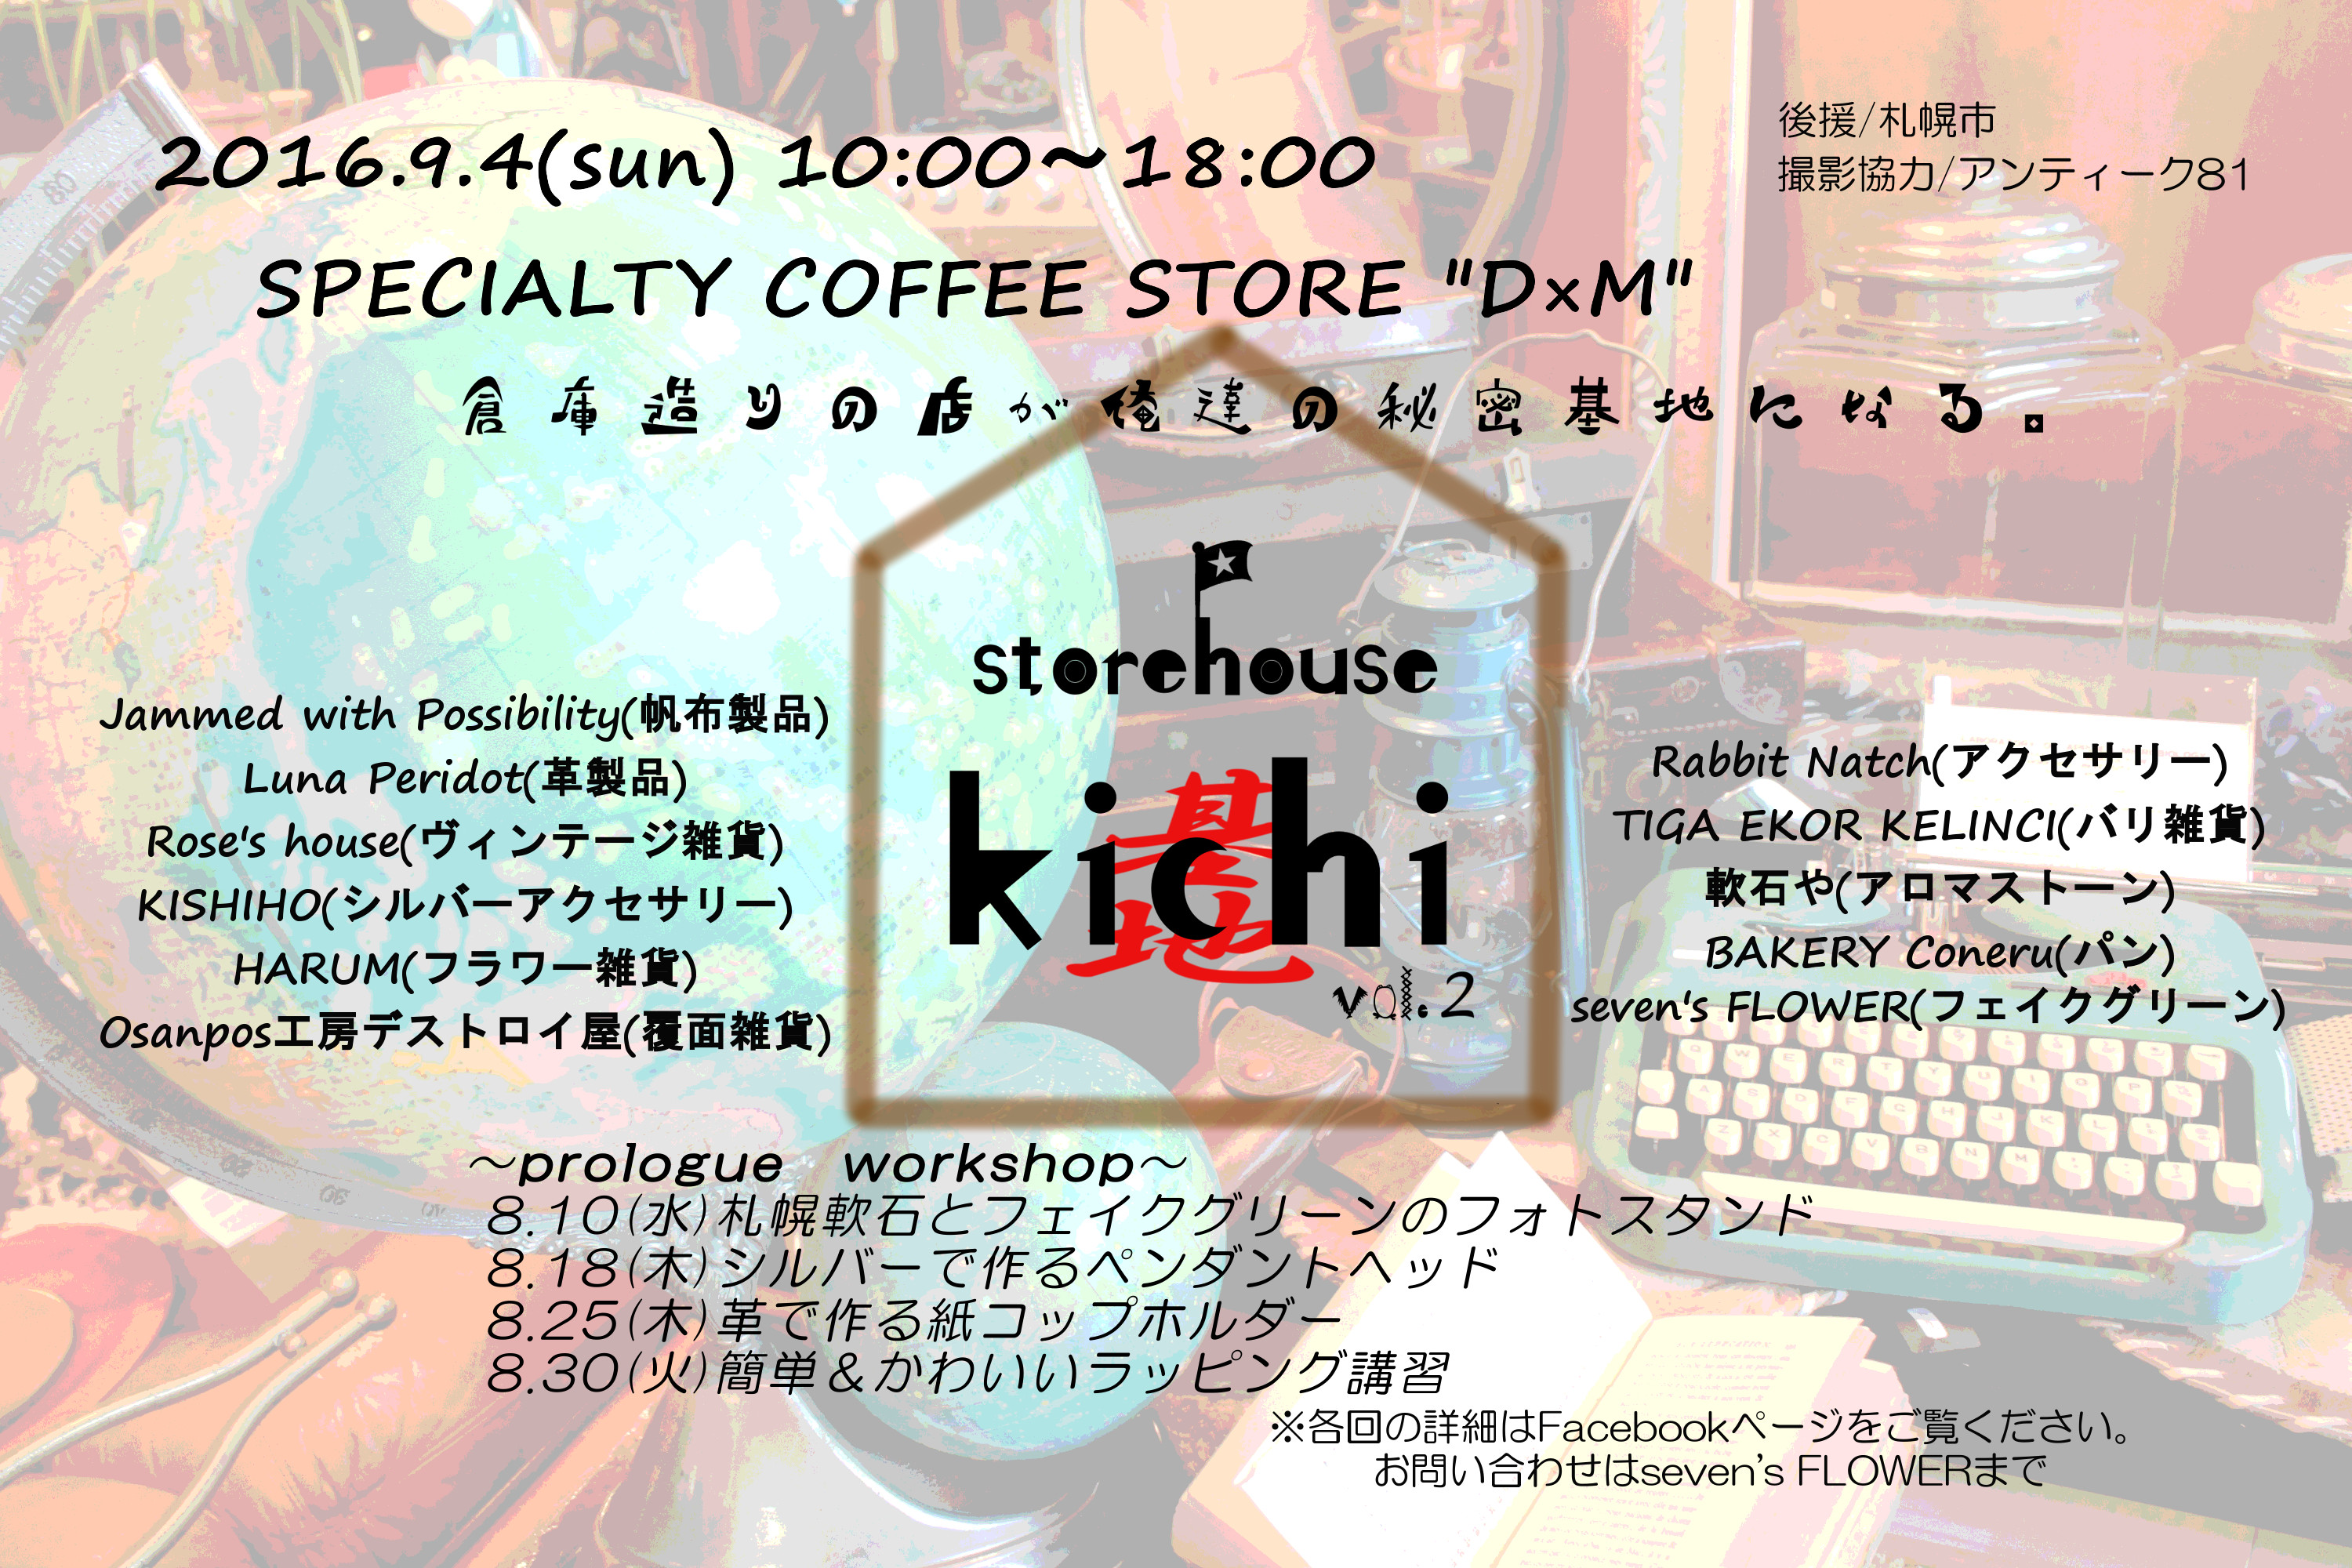 Storehouse基地vol.2 ~prologue workshop~